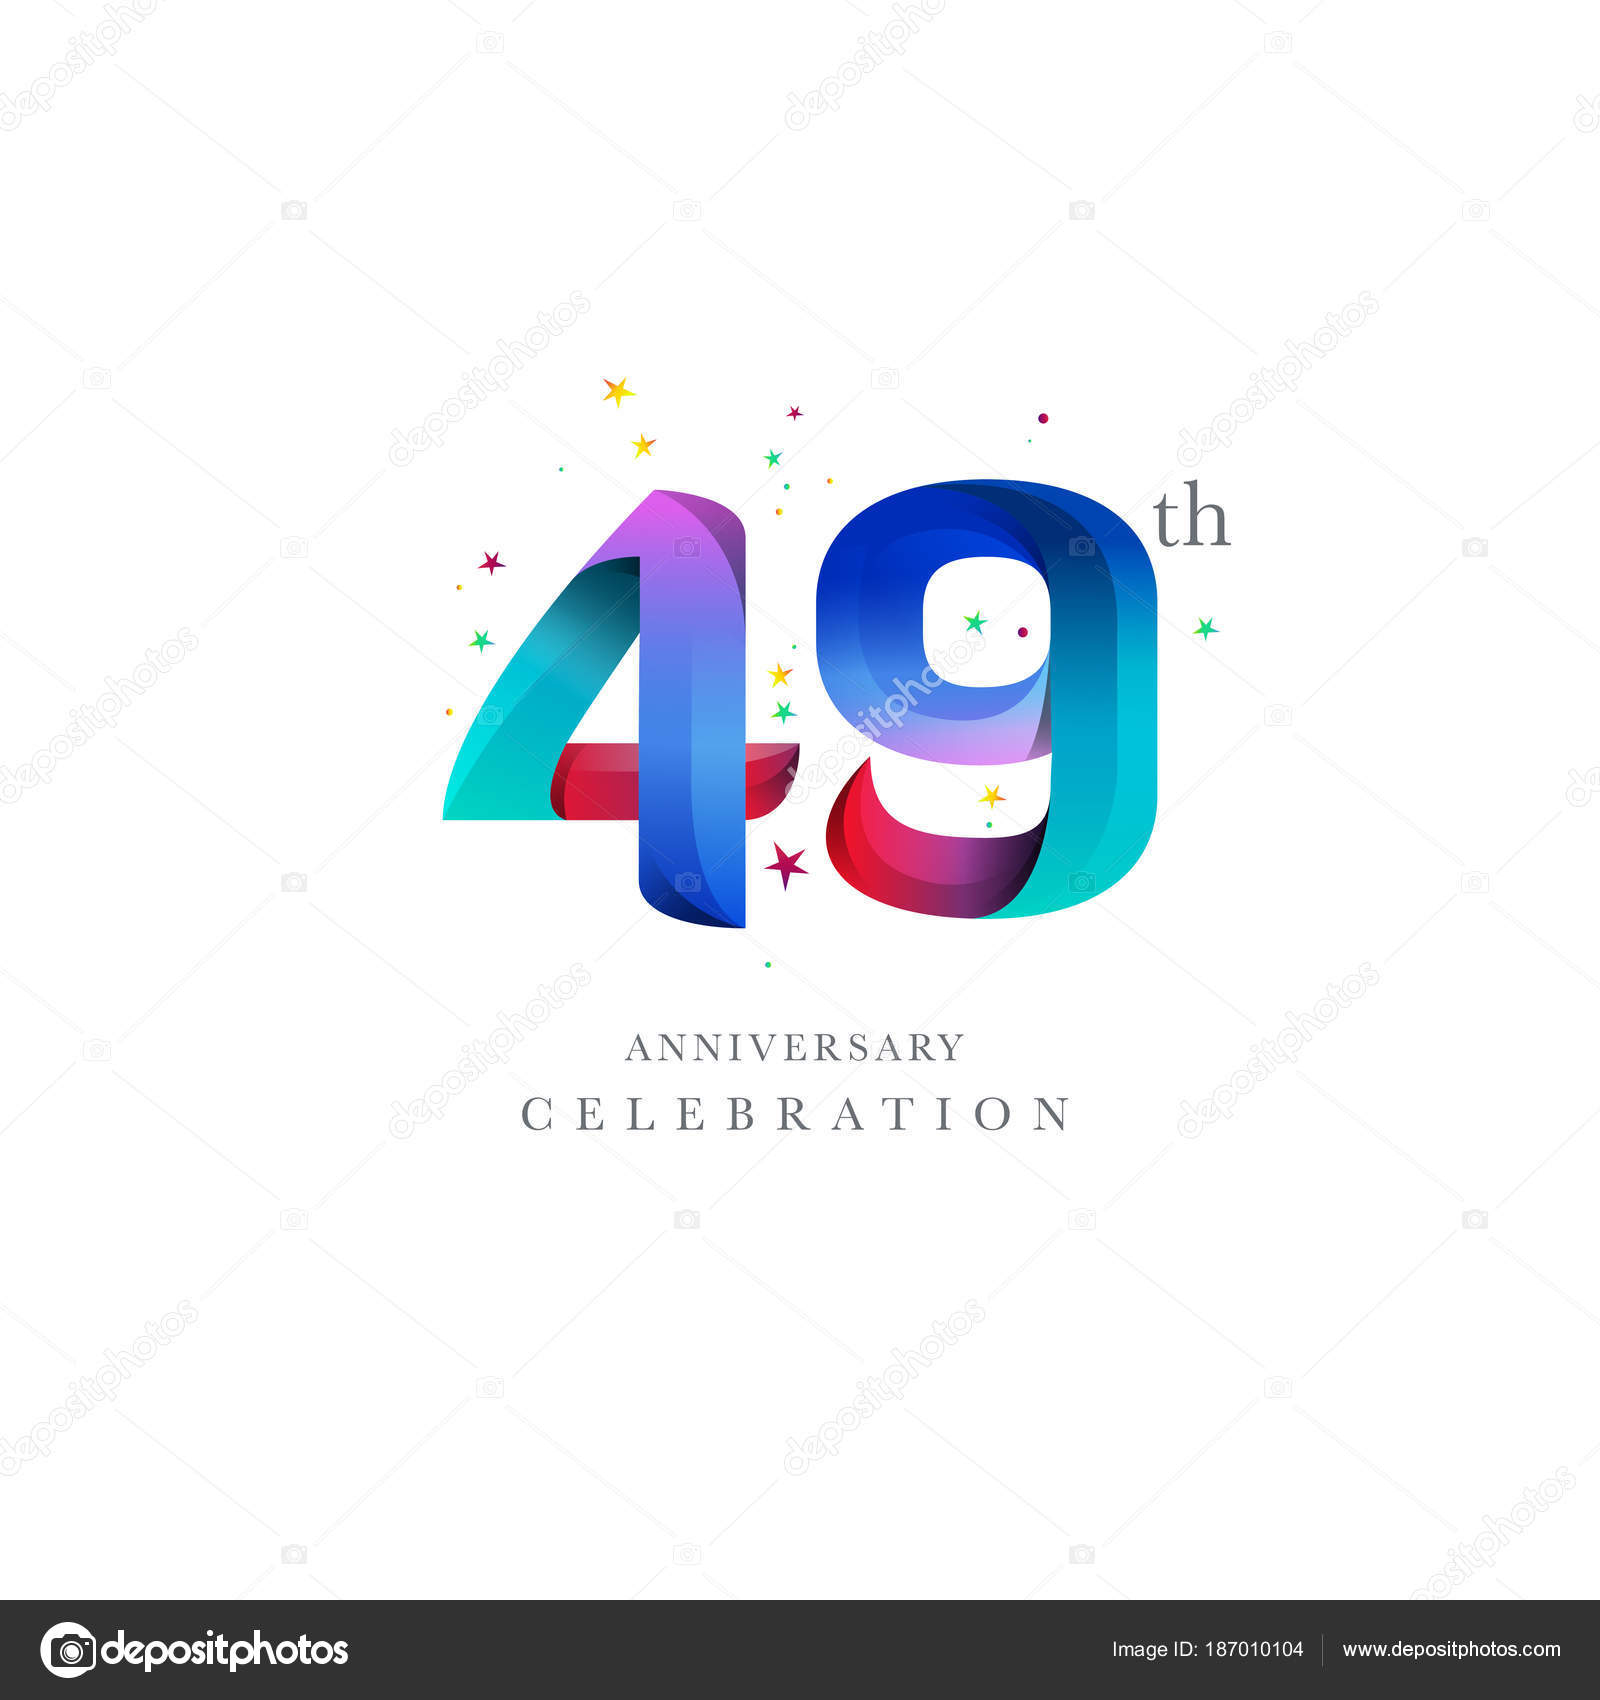 49th anniversary logo design